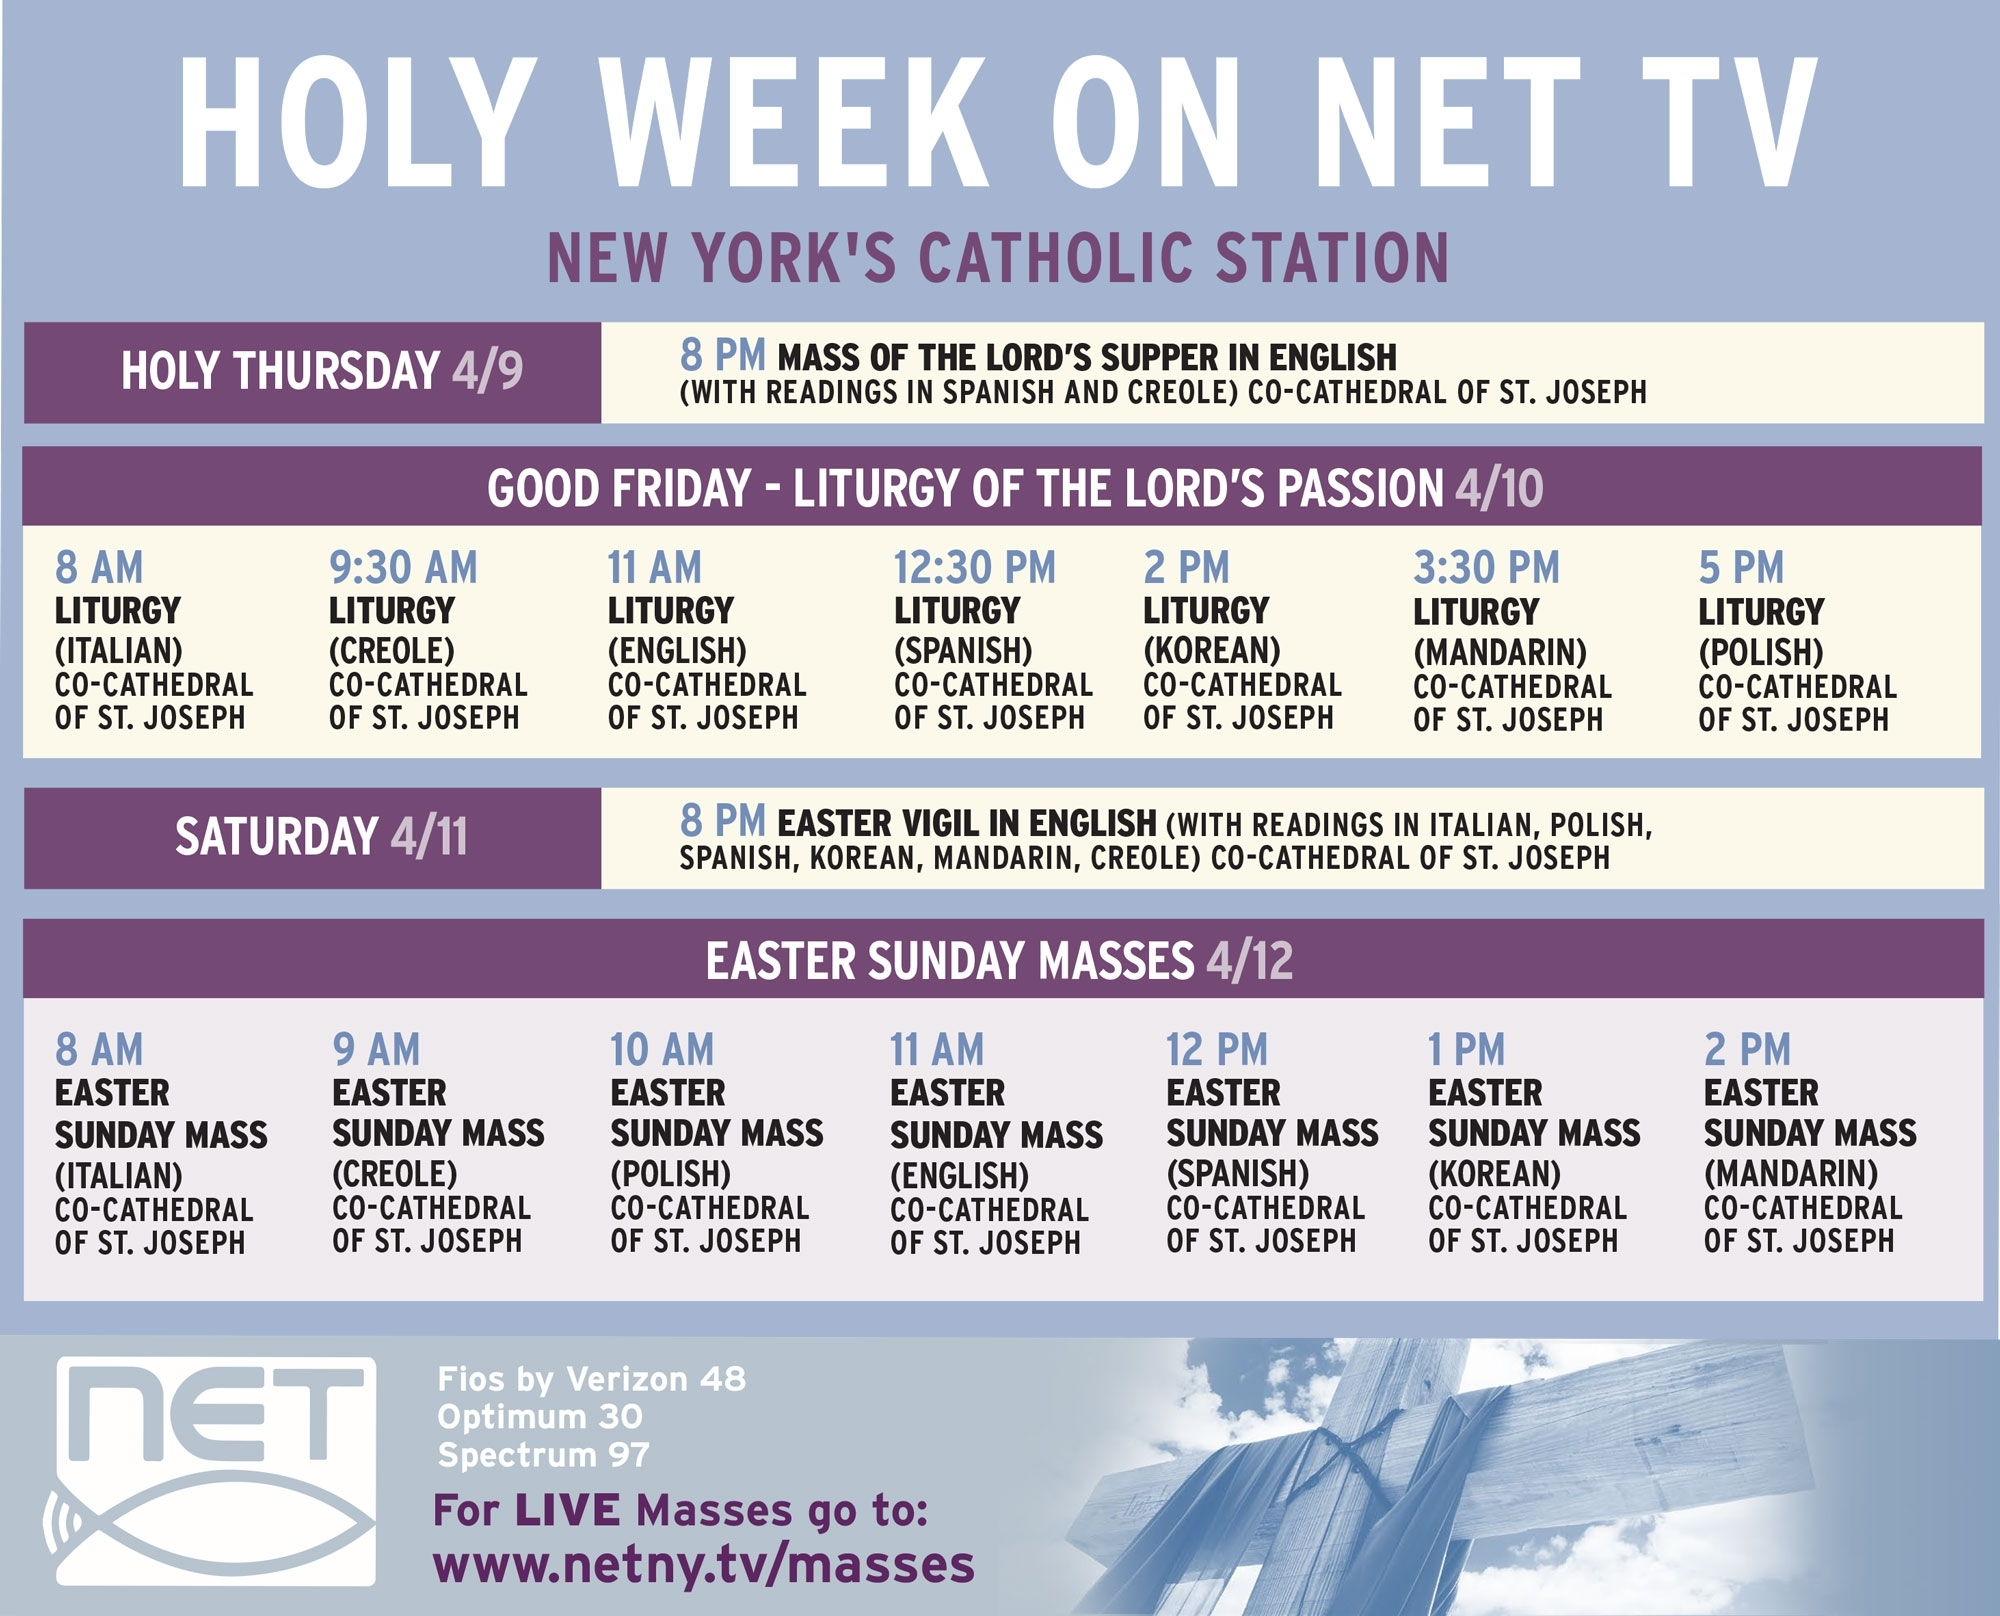 Tune In To The Holy Week Services (Psa For Catholics) - Bklyner with regard to 2020 Liturgical Calendar Holy Week